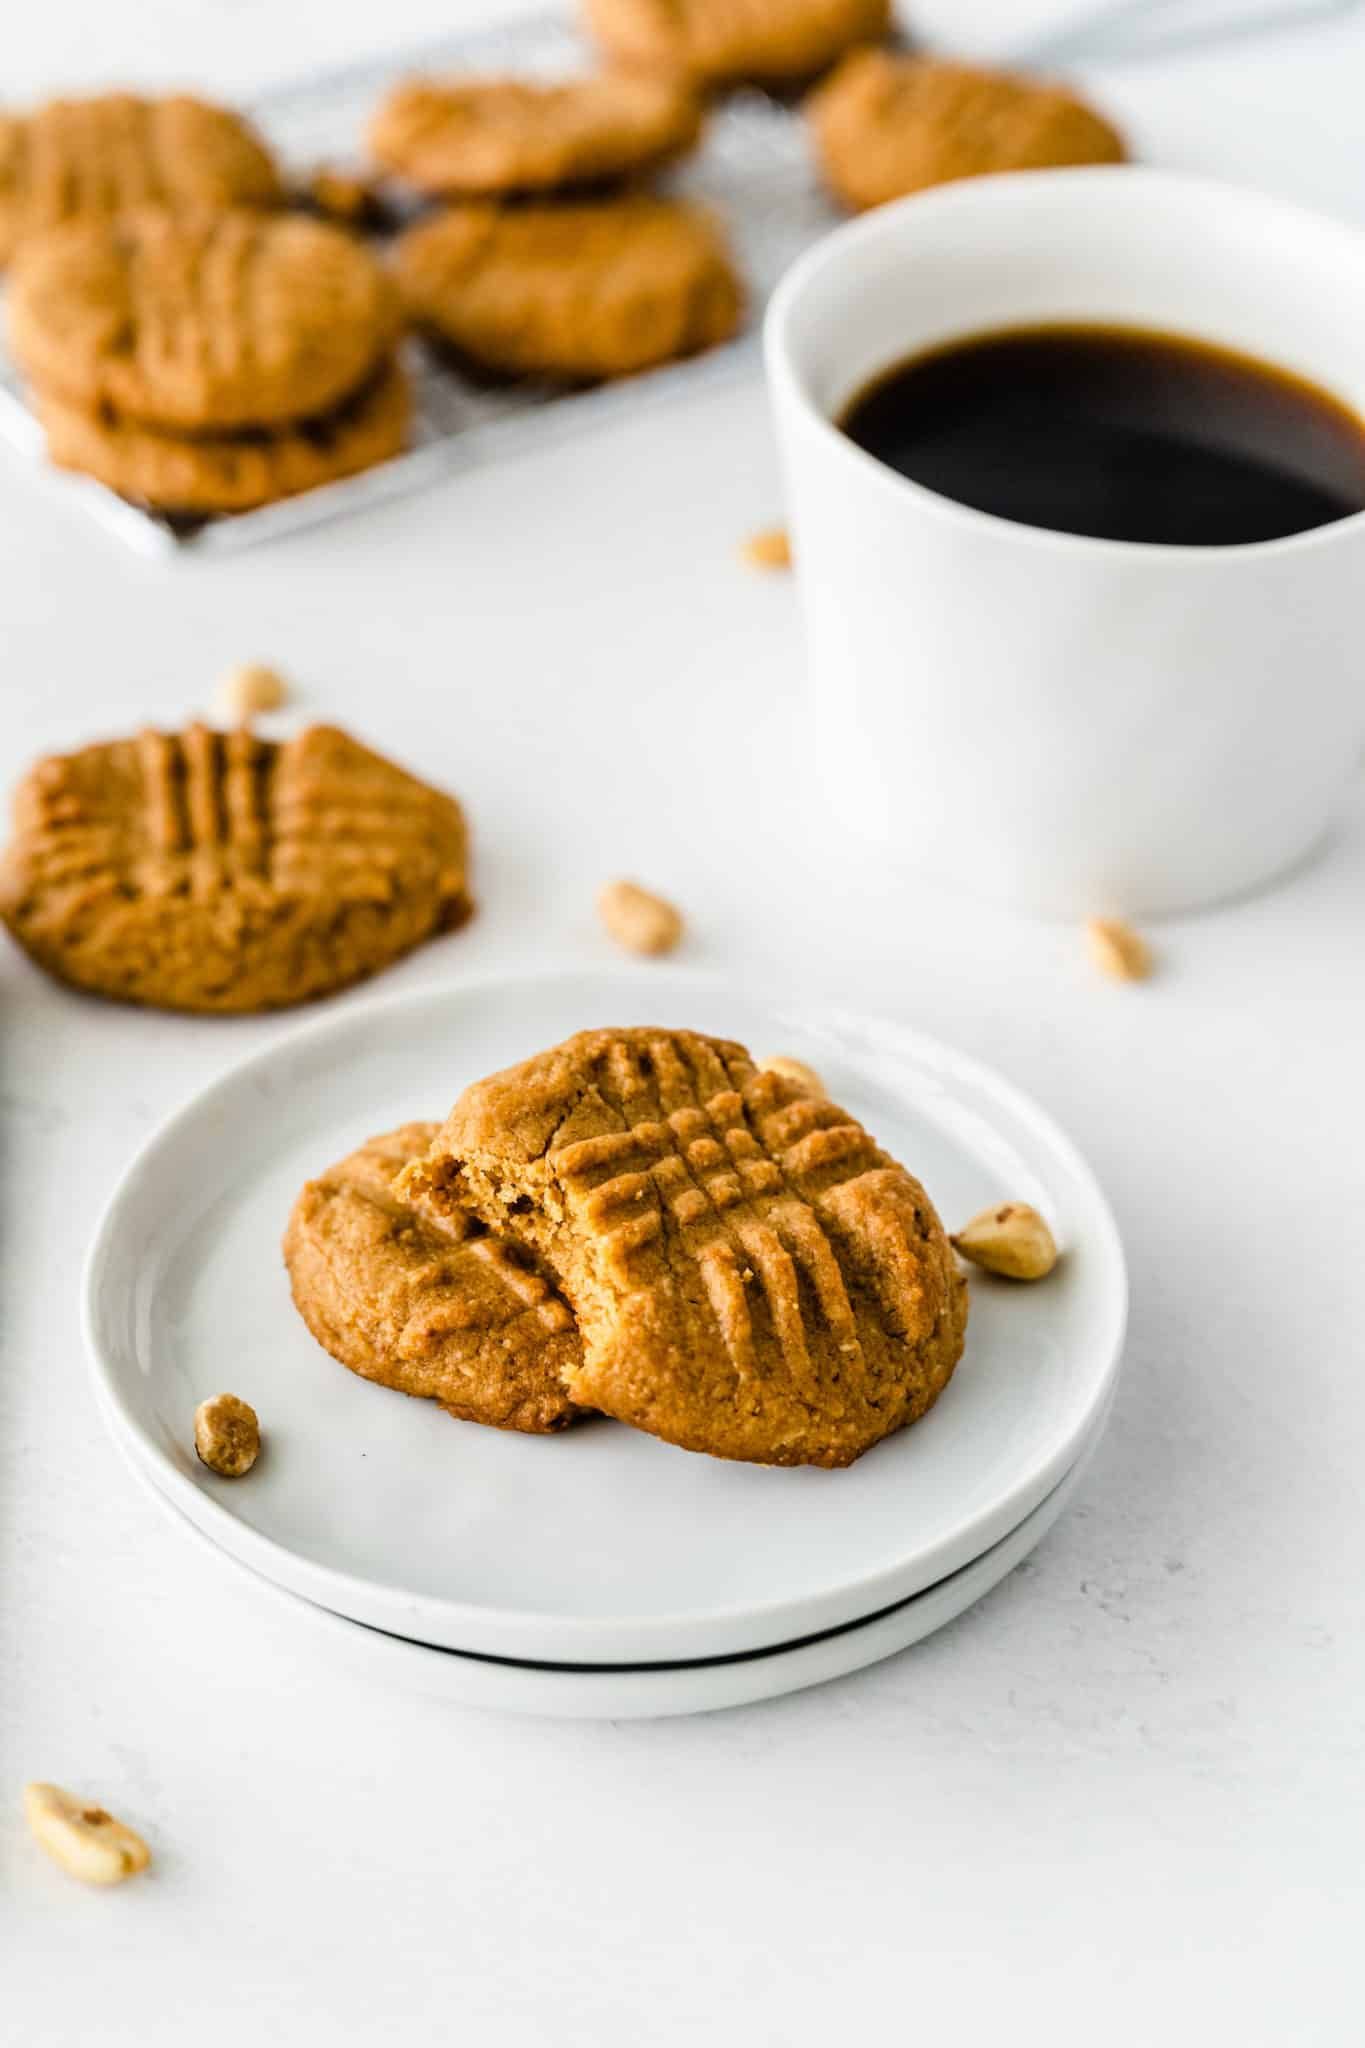 almond flour cookies on a plate with a cup of coffee